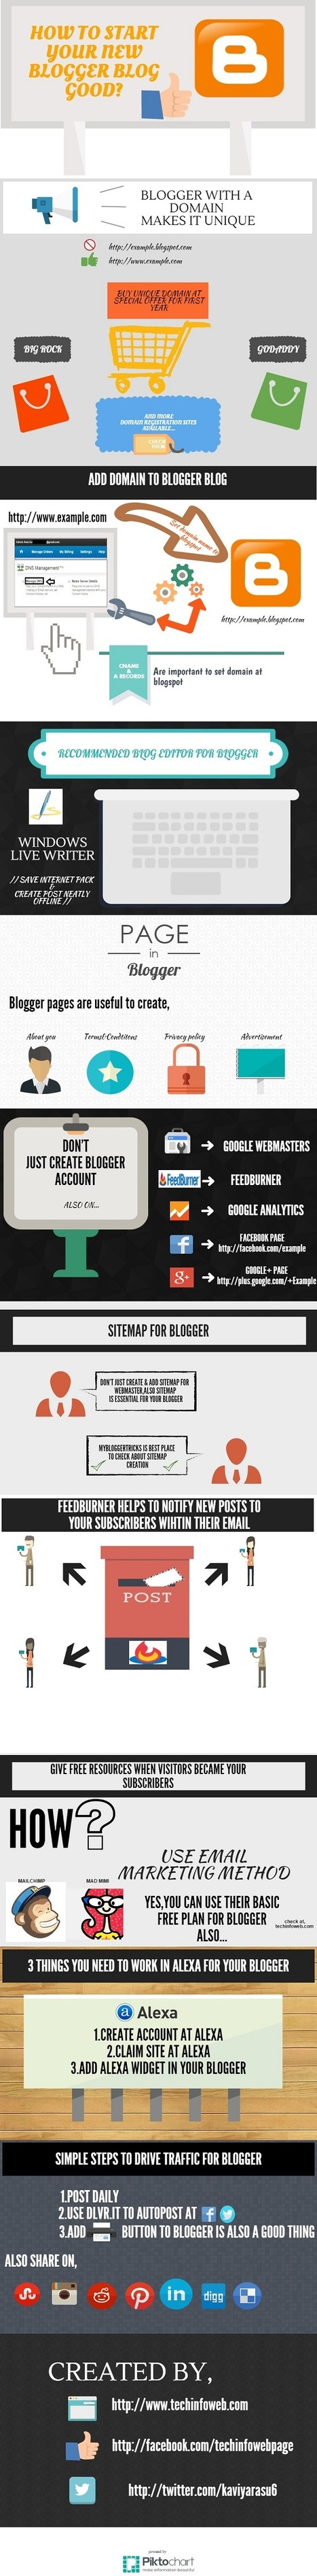 How to start a blogger blog good? | Techinfoweb | Techinfoweb | Scoop.it